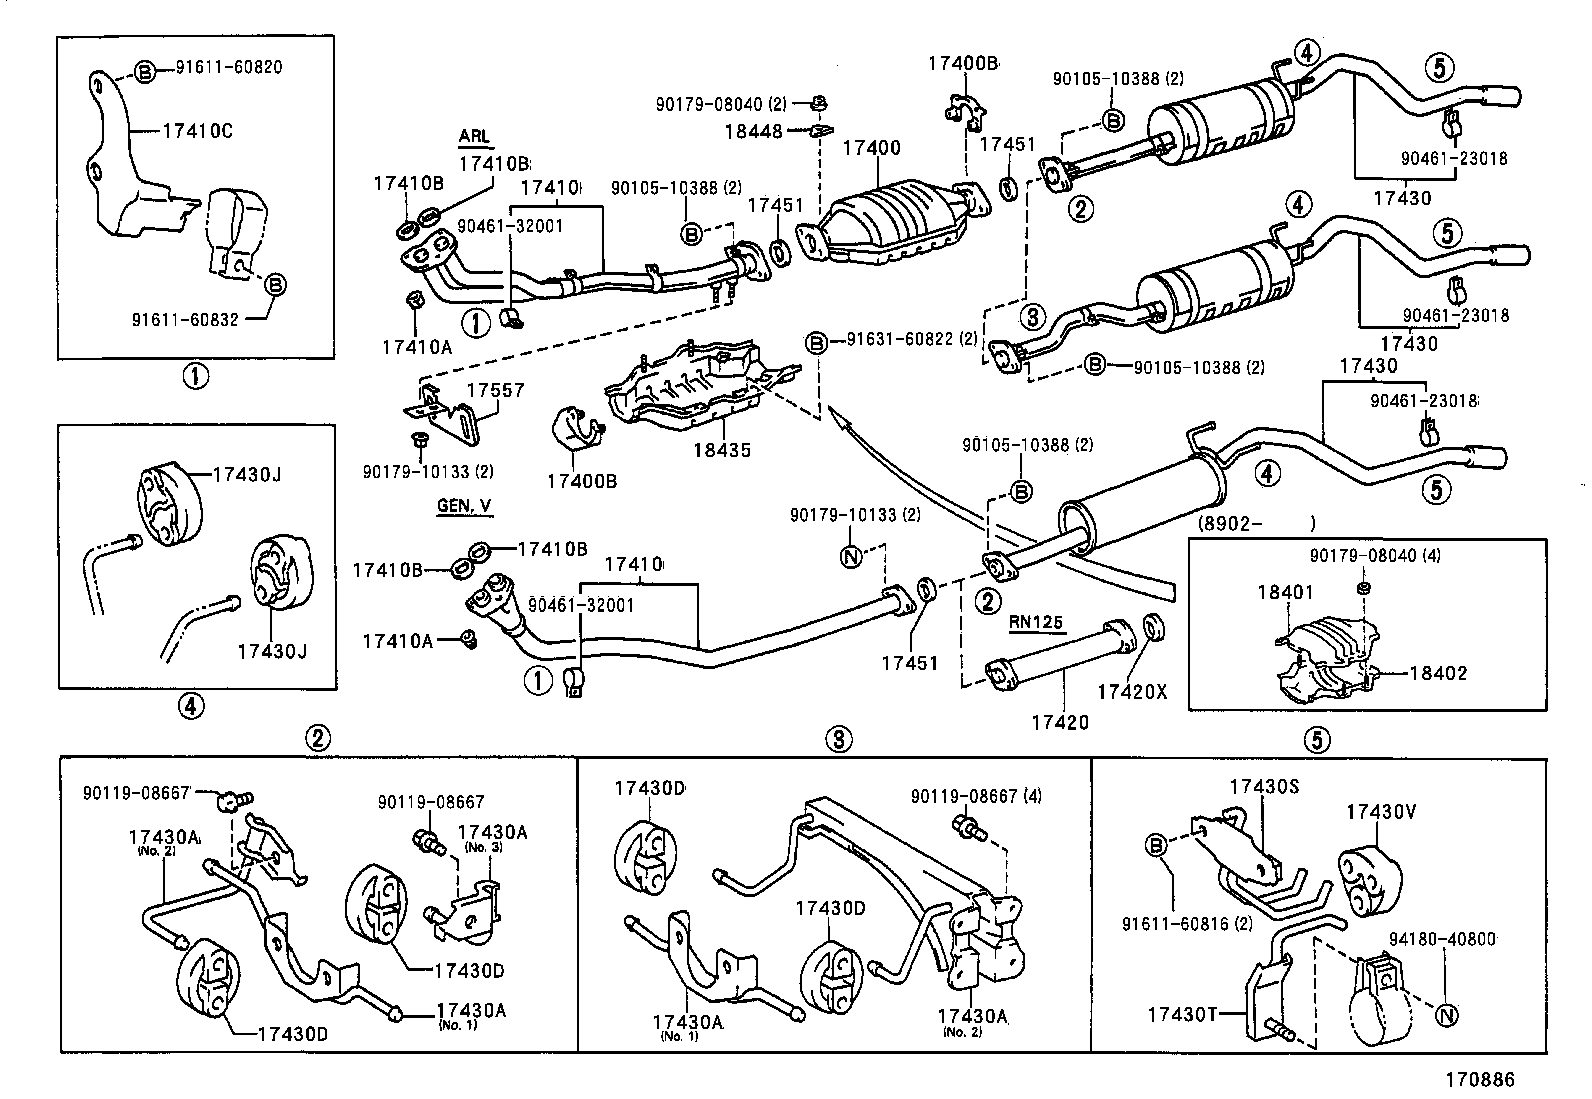 Egr Vacuum Line Routing Correct also 22re Fuel Injection Wiring Diagram besides TU5i 16957 additionally 2002 Dodge 4 7 Spark Plug Wiring Diagram besides Toyota 22re Wiring Diagram 1989 Pickup Engine 123754 95 Fuel. on toyota 22re engine diagram